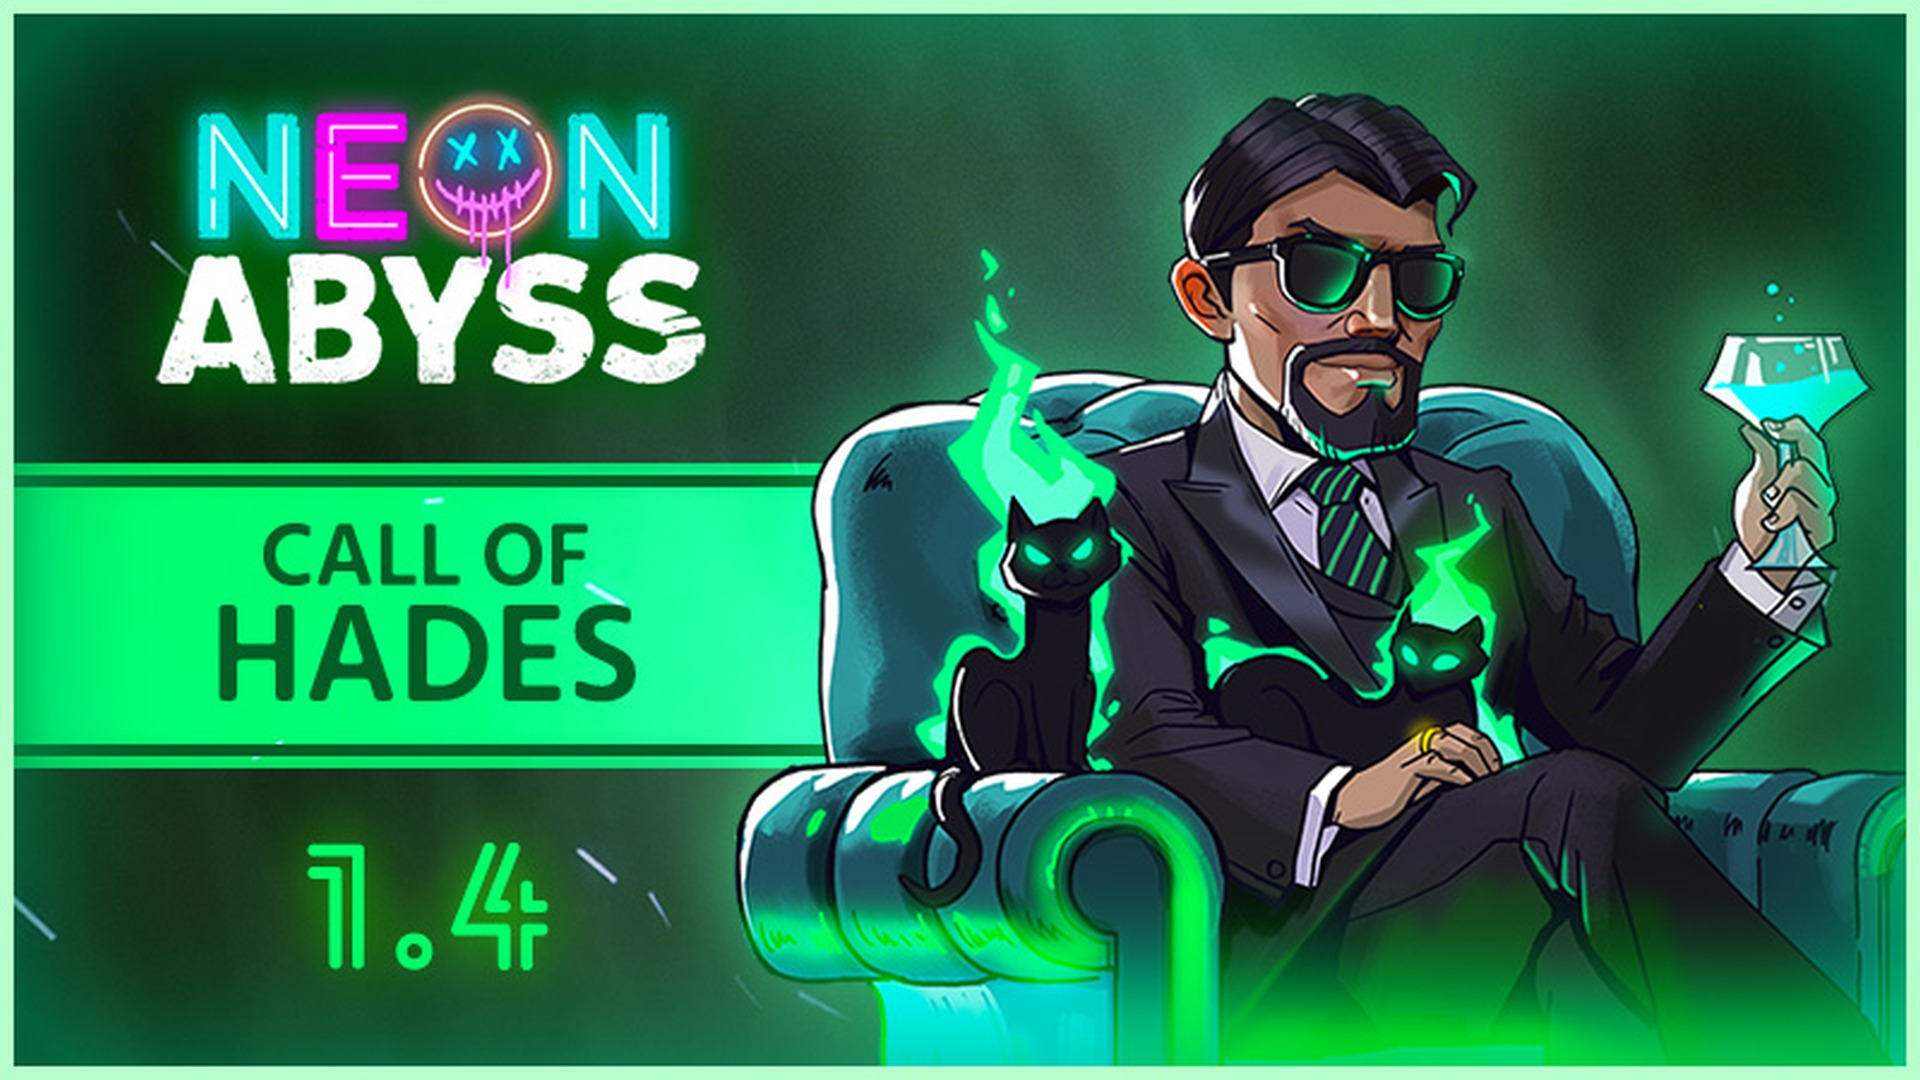 Neon Abyss - Call of Hades | Veewo Games, Team17